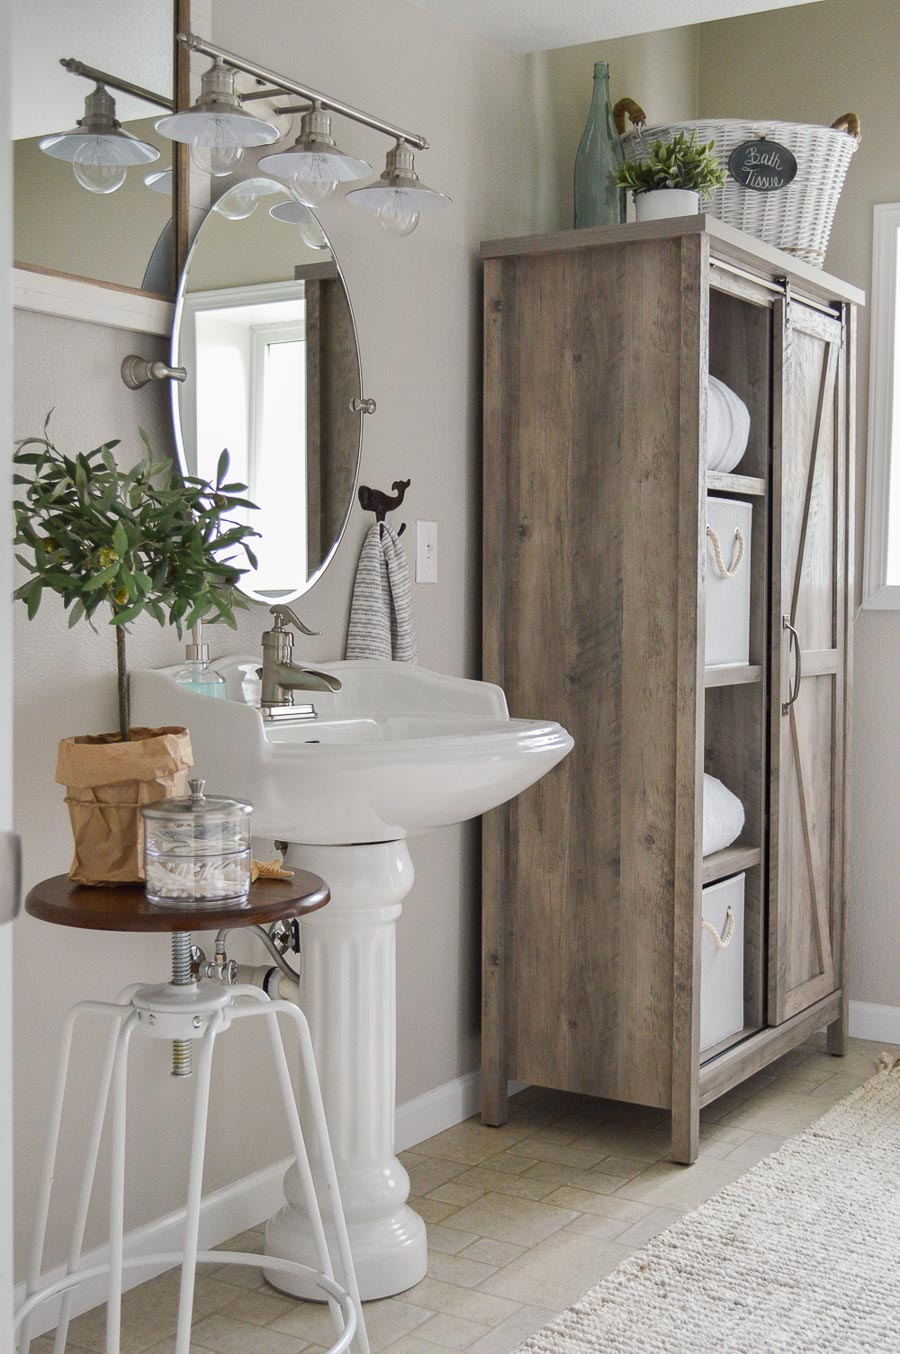 One of the best greige paint colors - Sherwin Williams Worldly Gray - love!